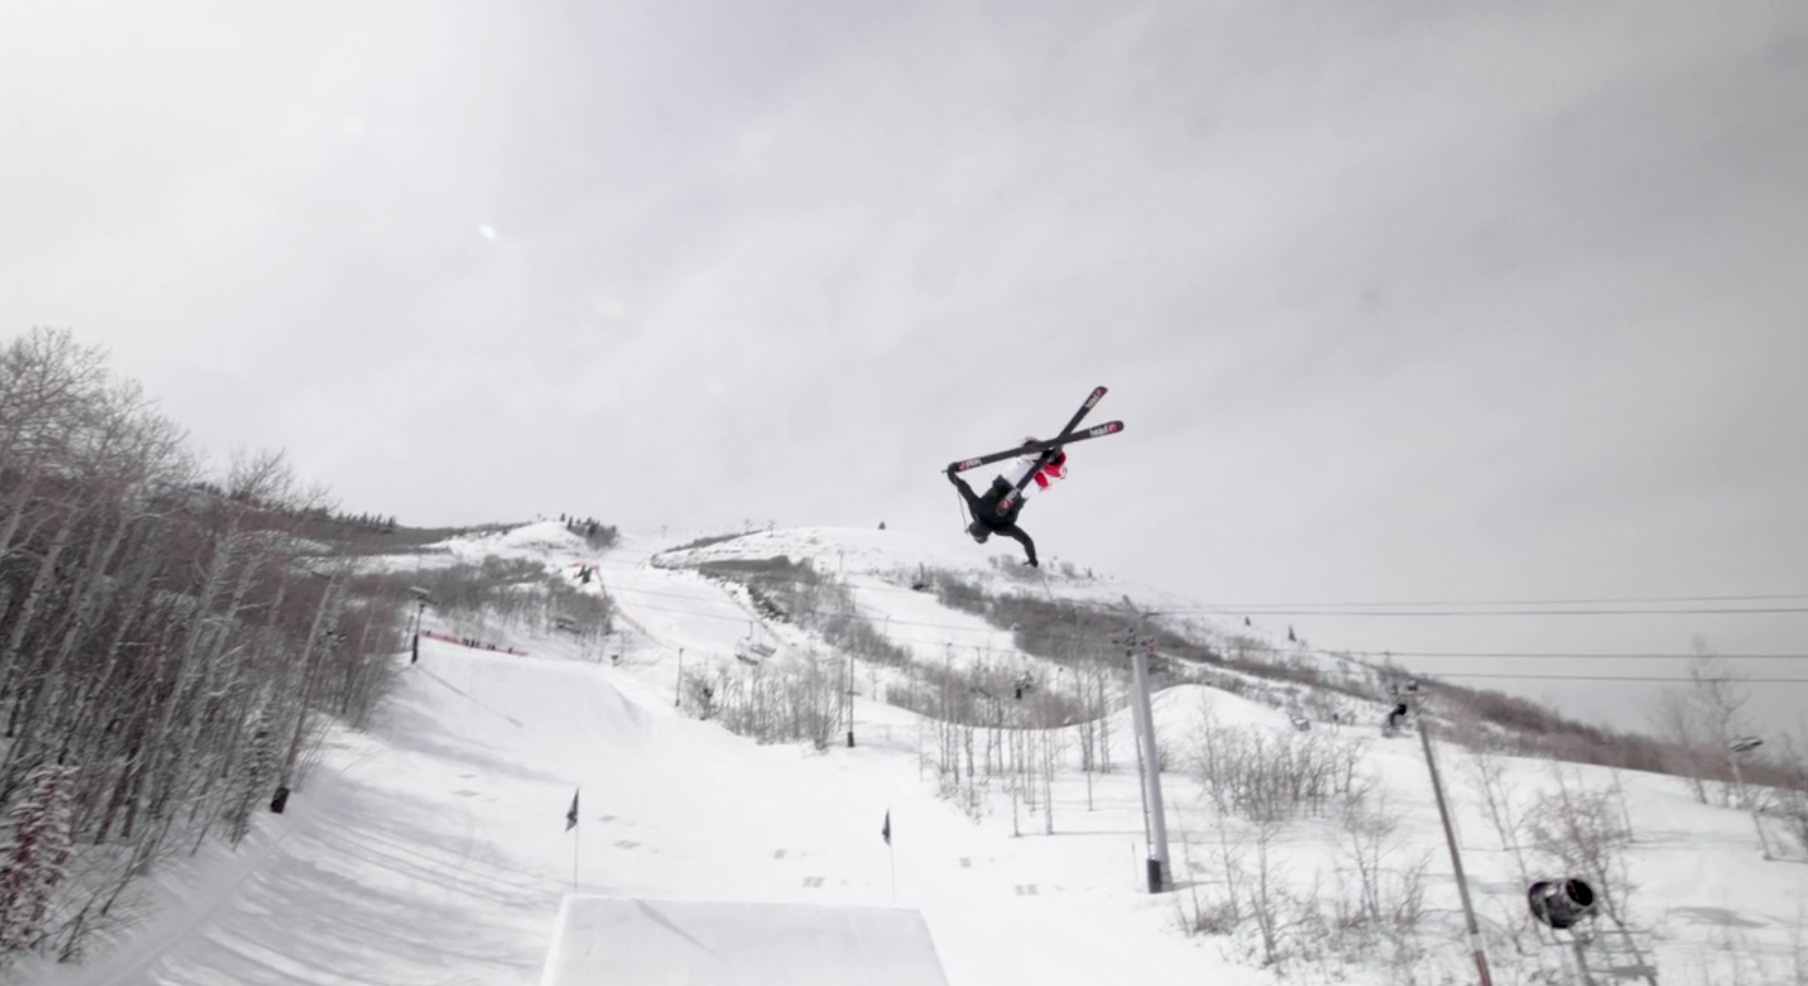 Simon Dumont and Tom Wallisch Shred Some Snow In This Vid